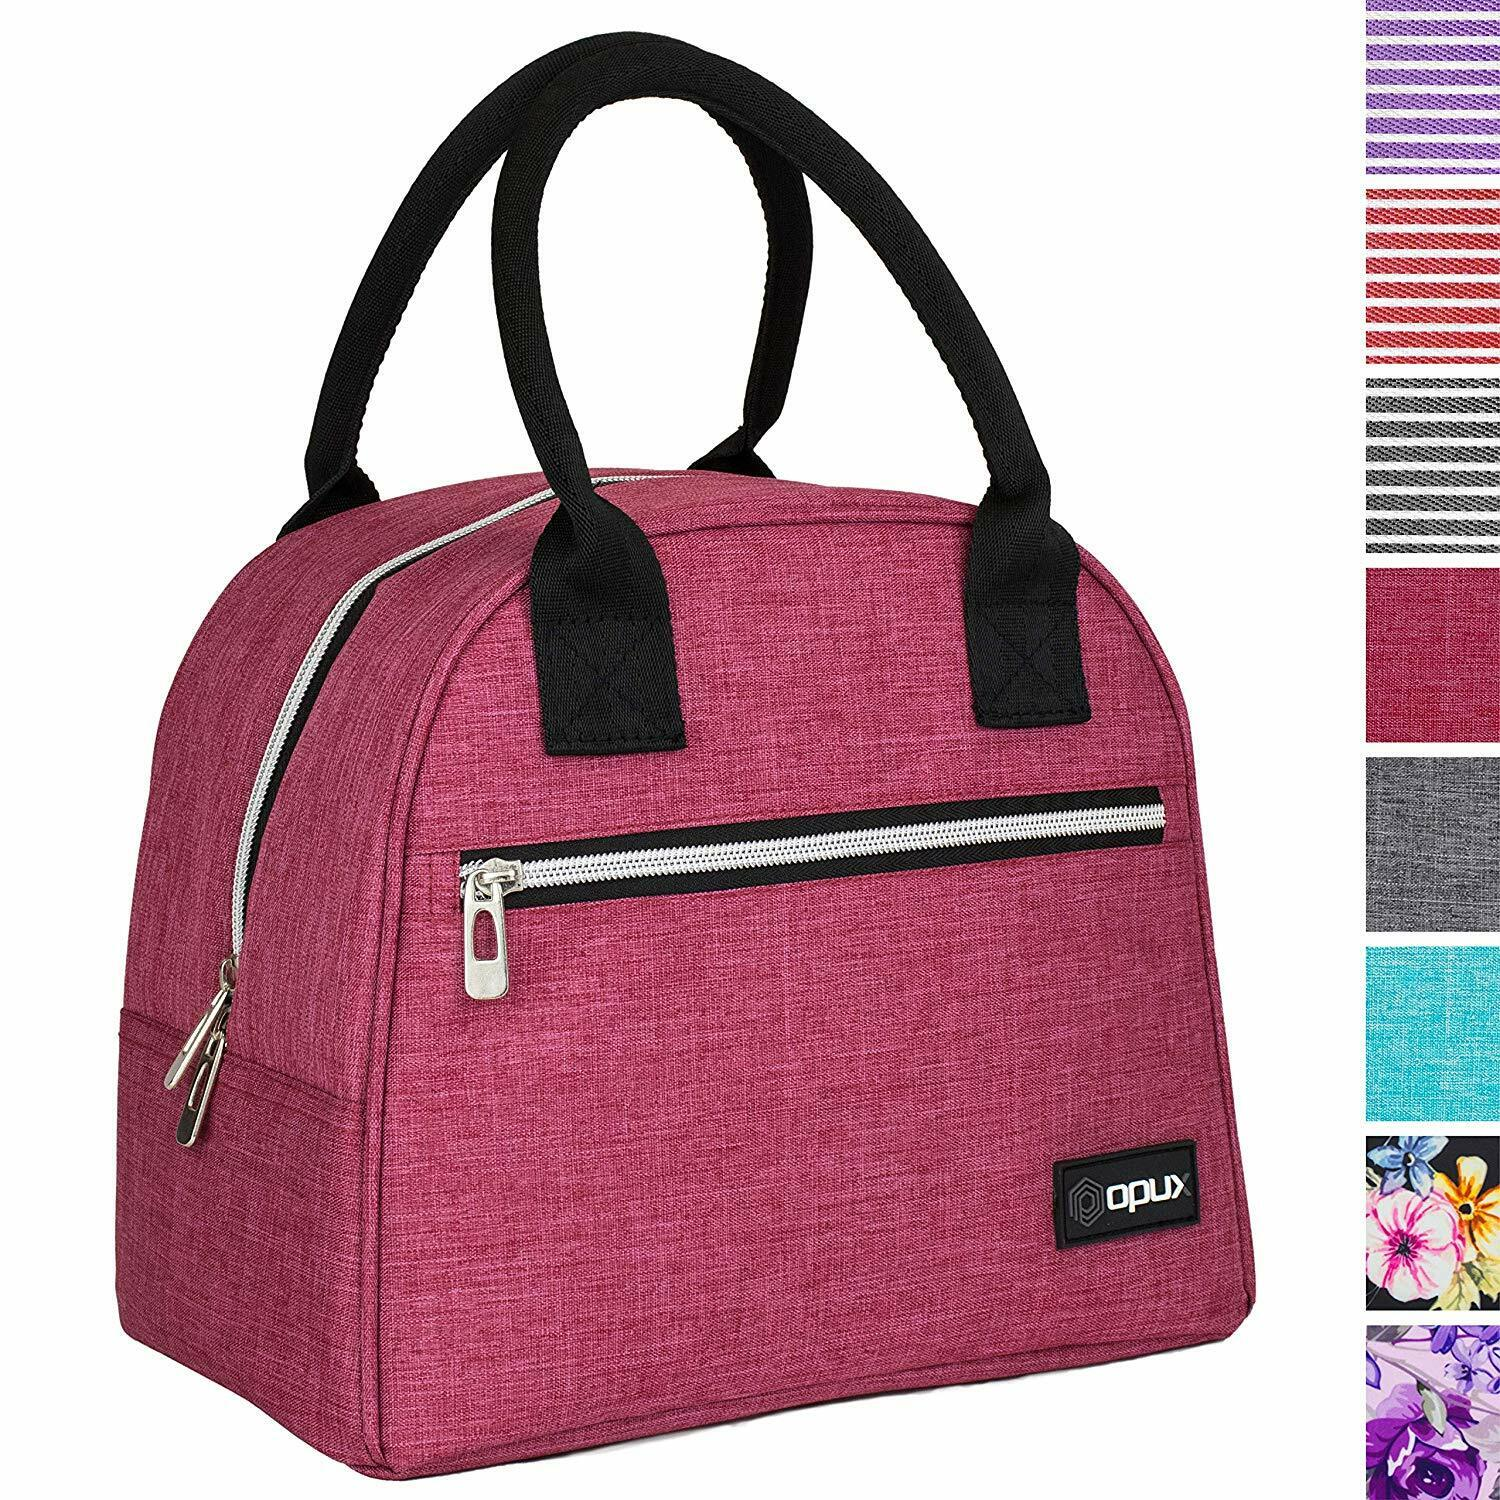 OPUX Lunch Bag for Women | Insulated Lunch Tote, Reusable So